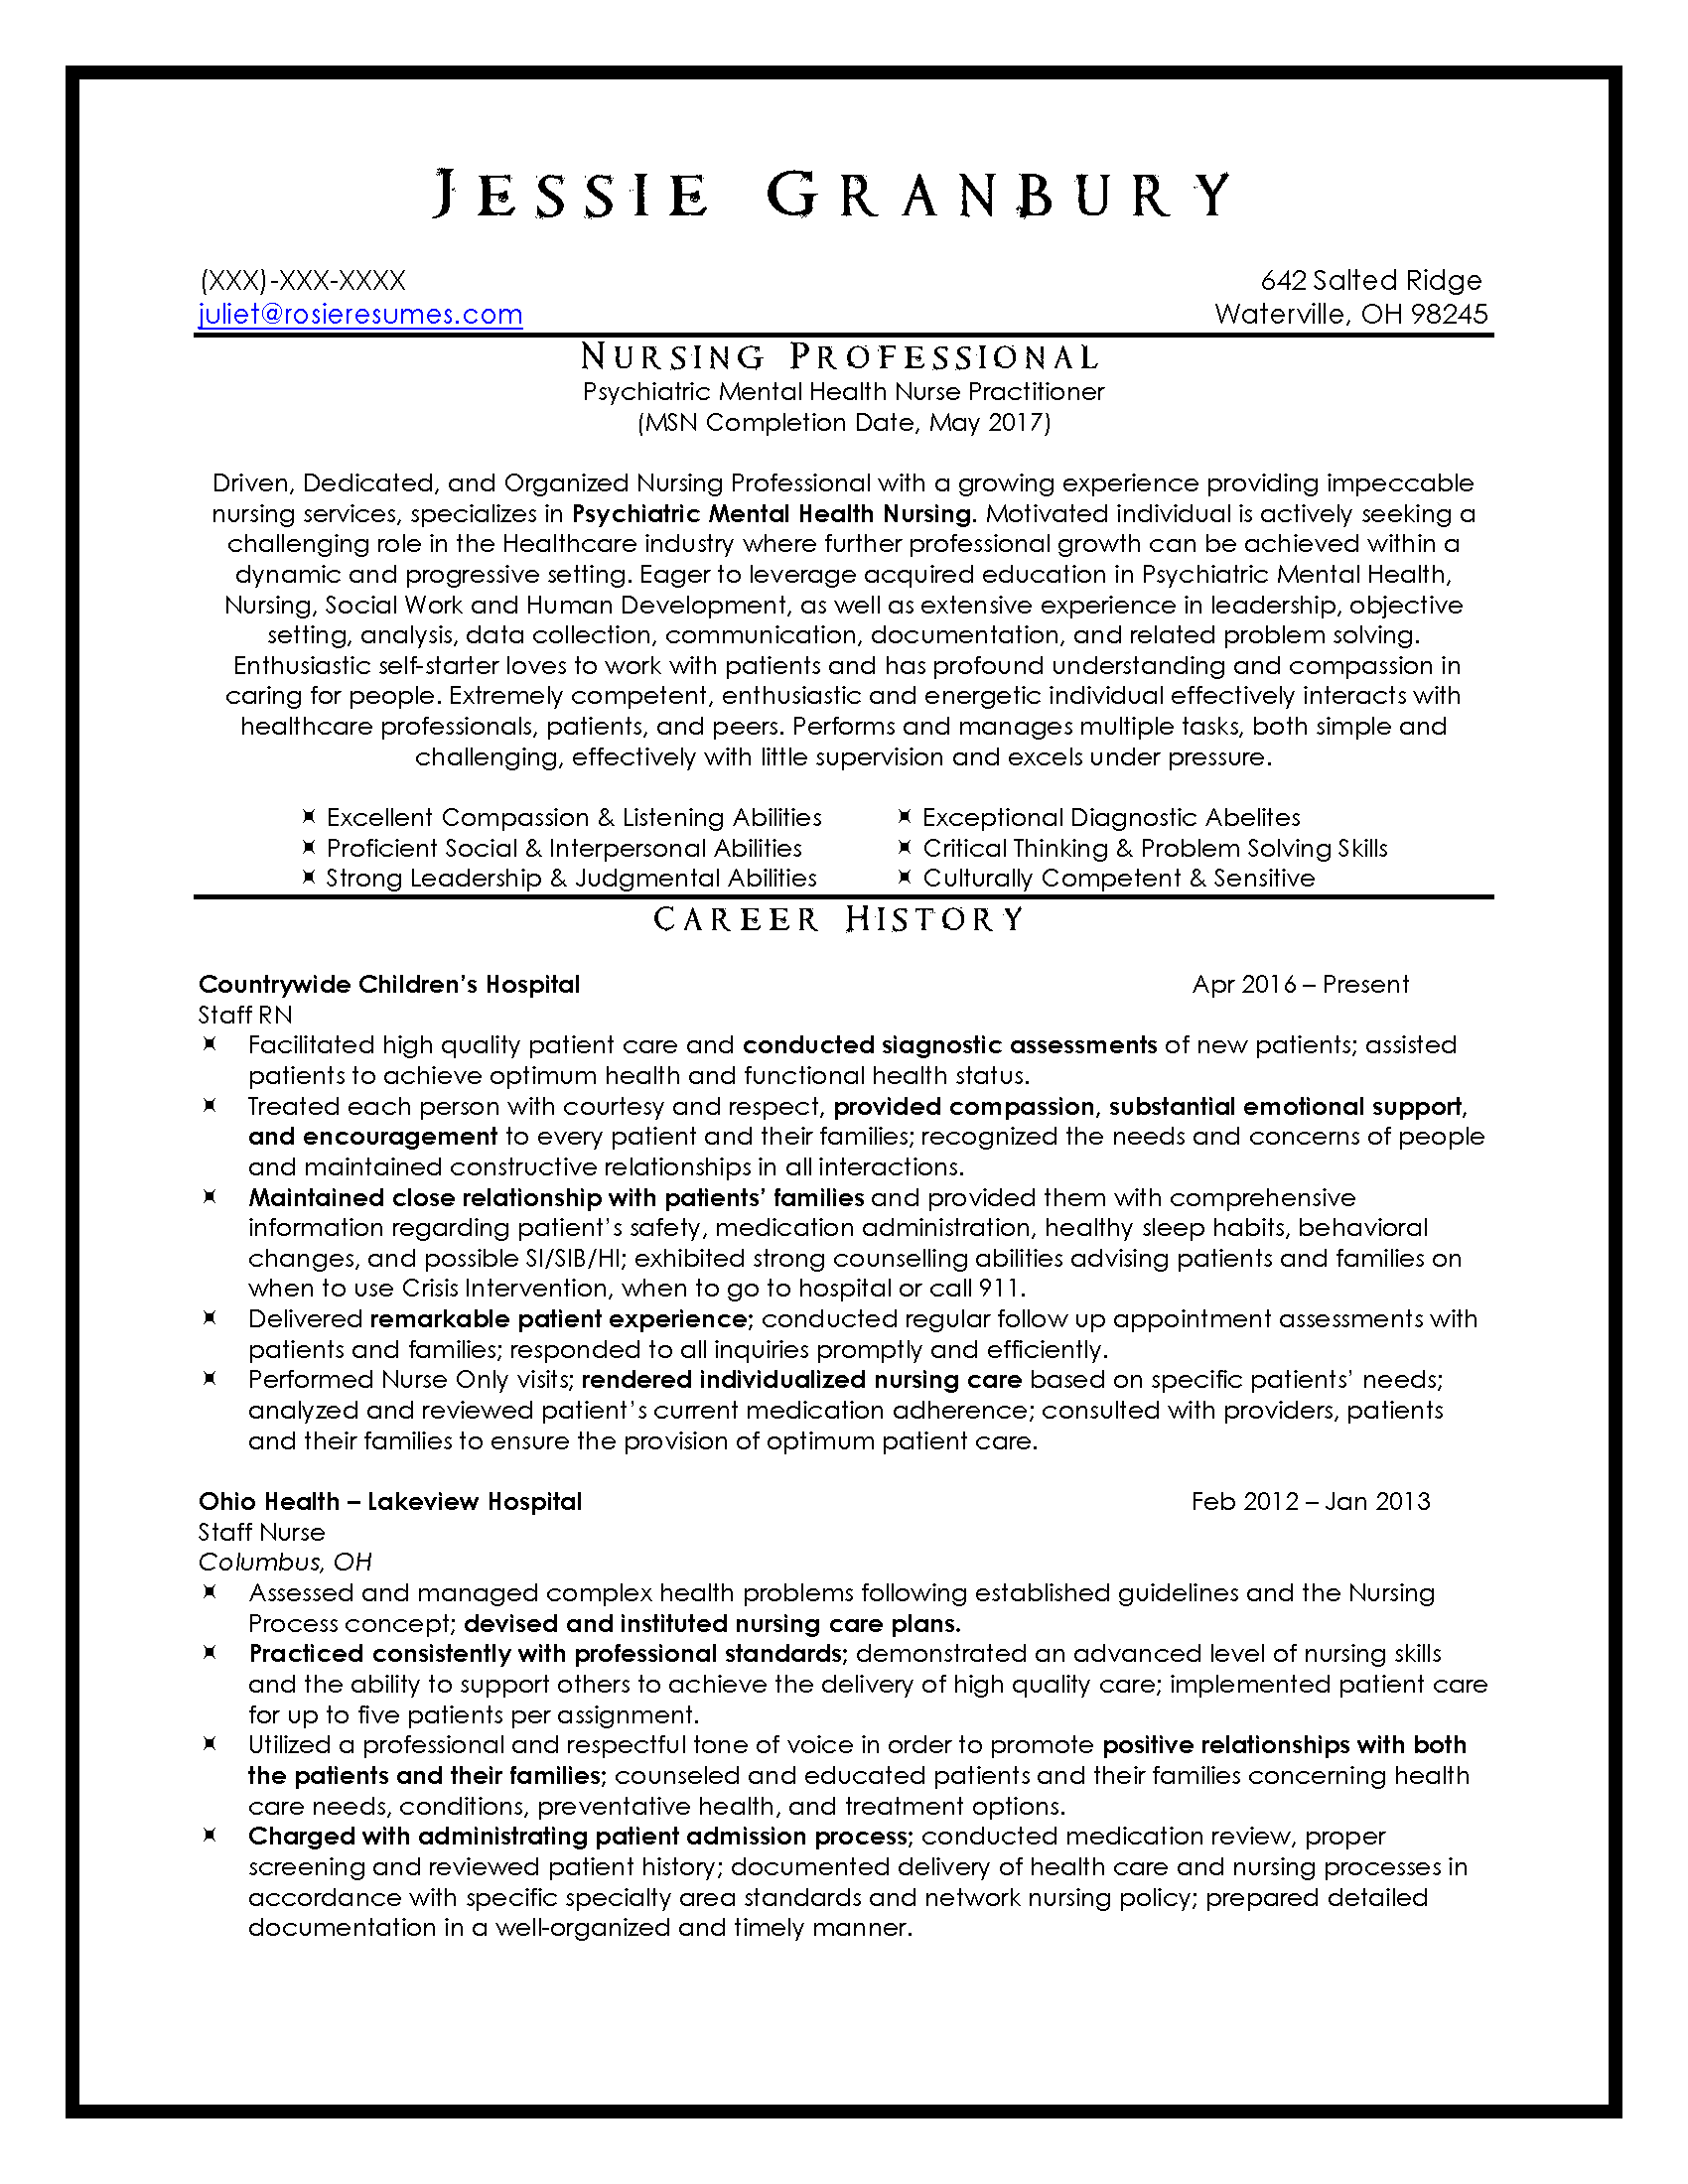 RRTRS Nursing Resume Sample_Page_1